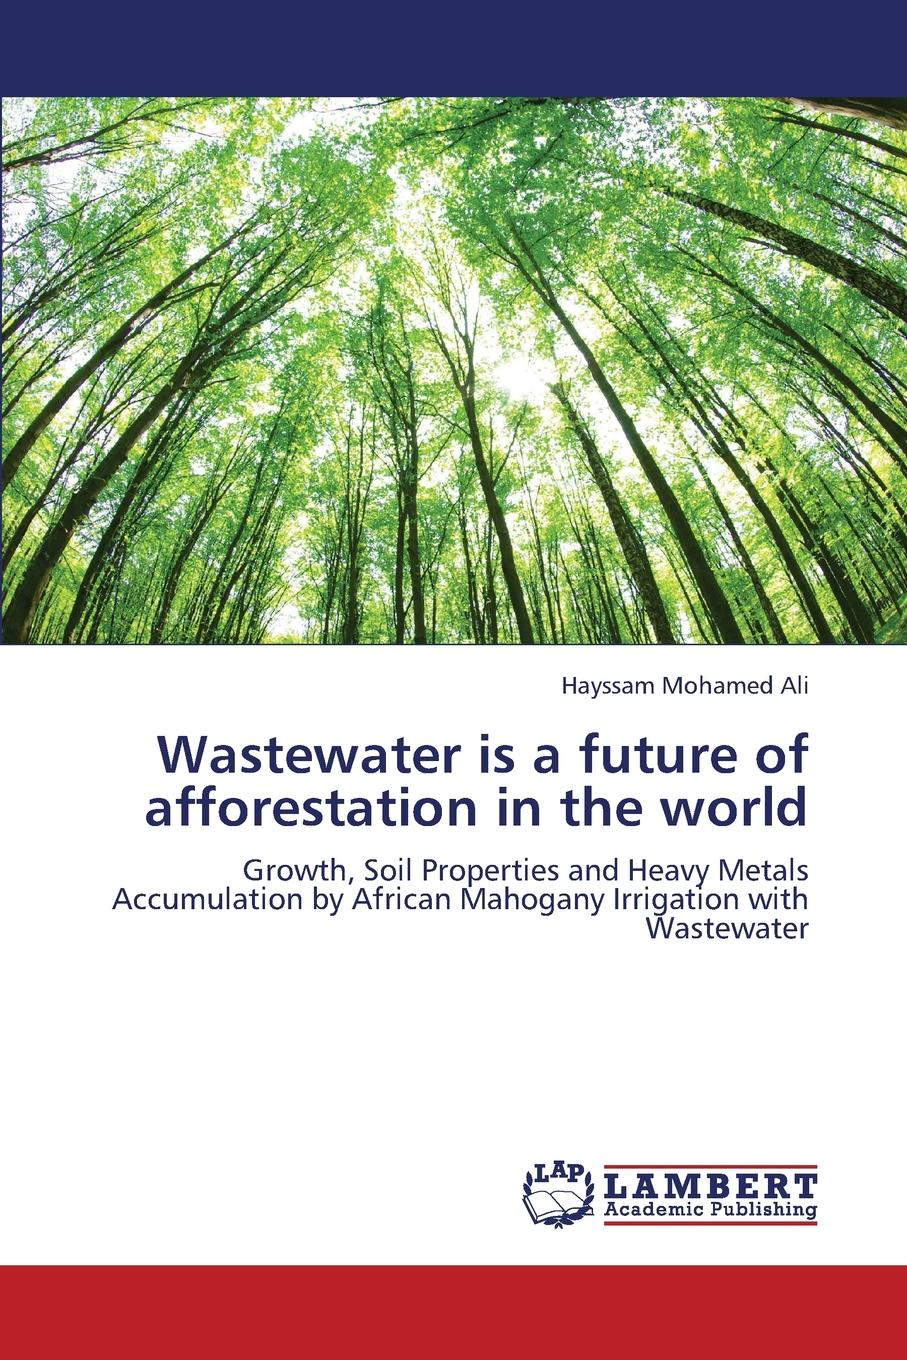 где купить Ali Hayssam Mohamed Wastewater Is a Future of Afforestation in the World дешево